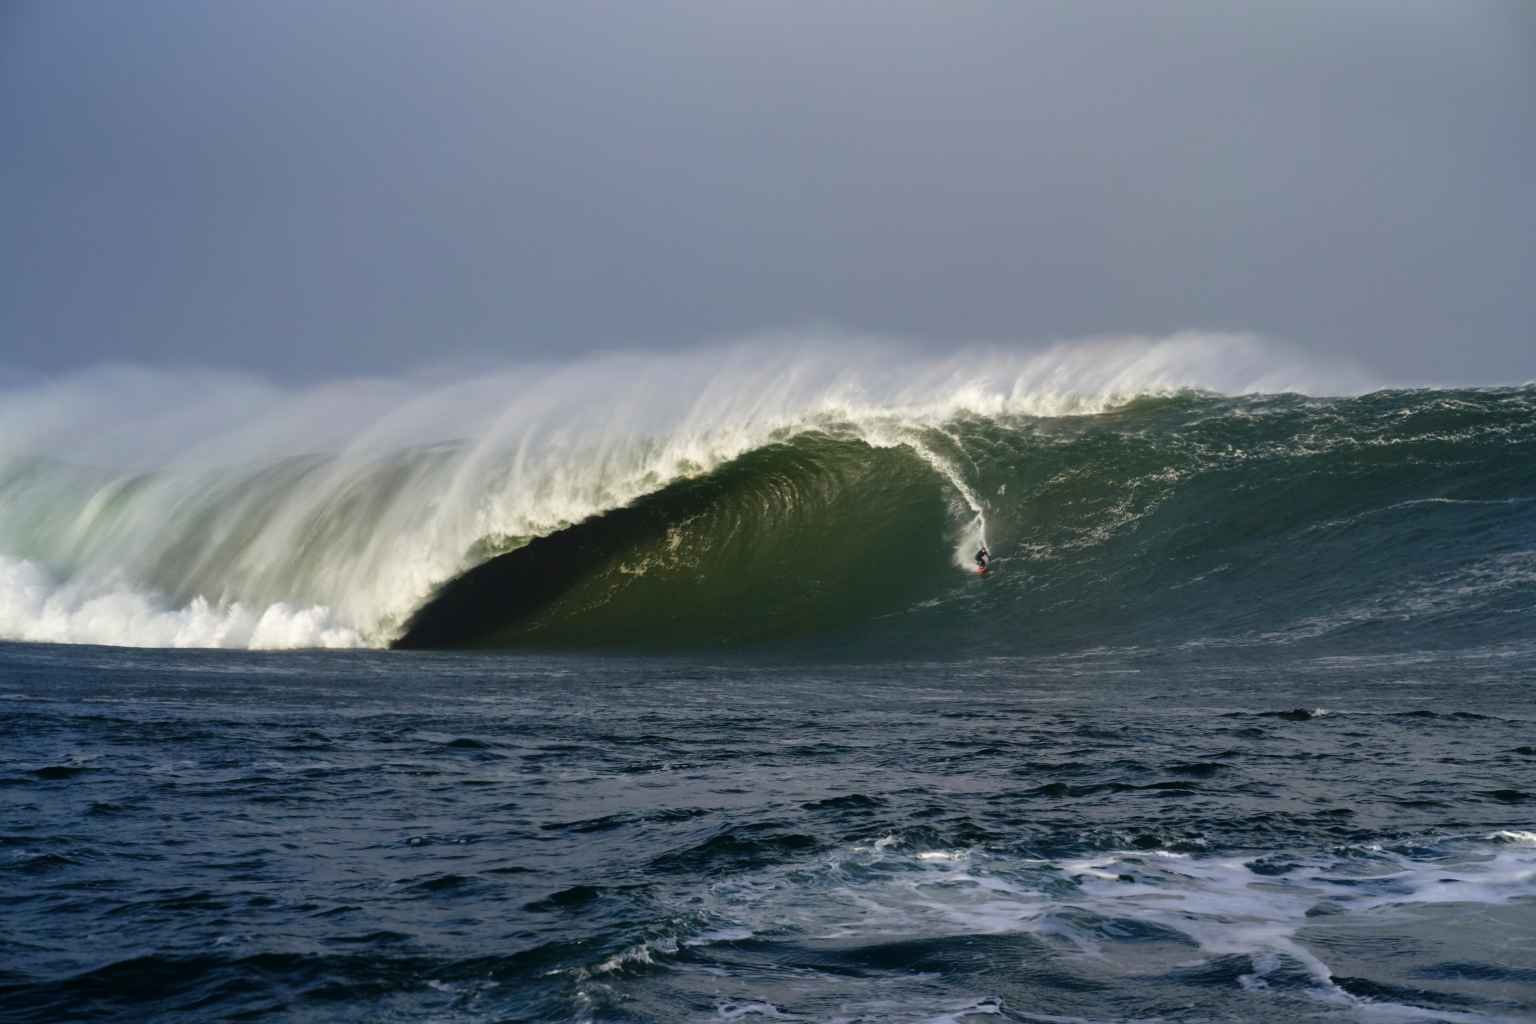 Conor Maguire caught what some are calling the biggest wave ever surfed in Ireland WorldSurfLeague